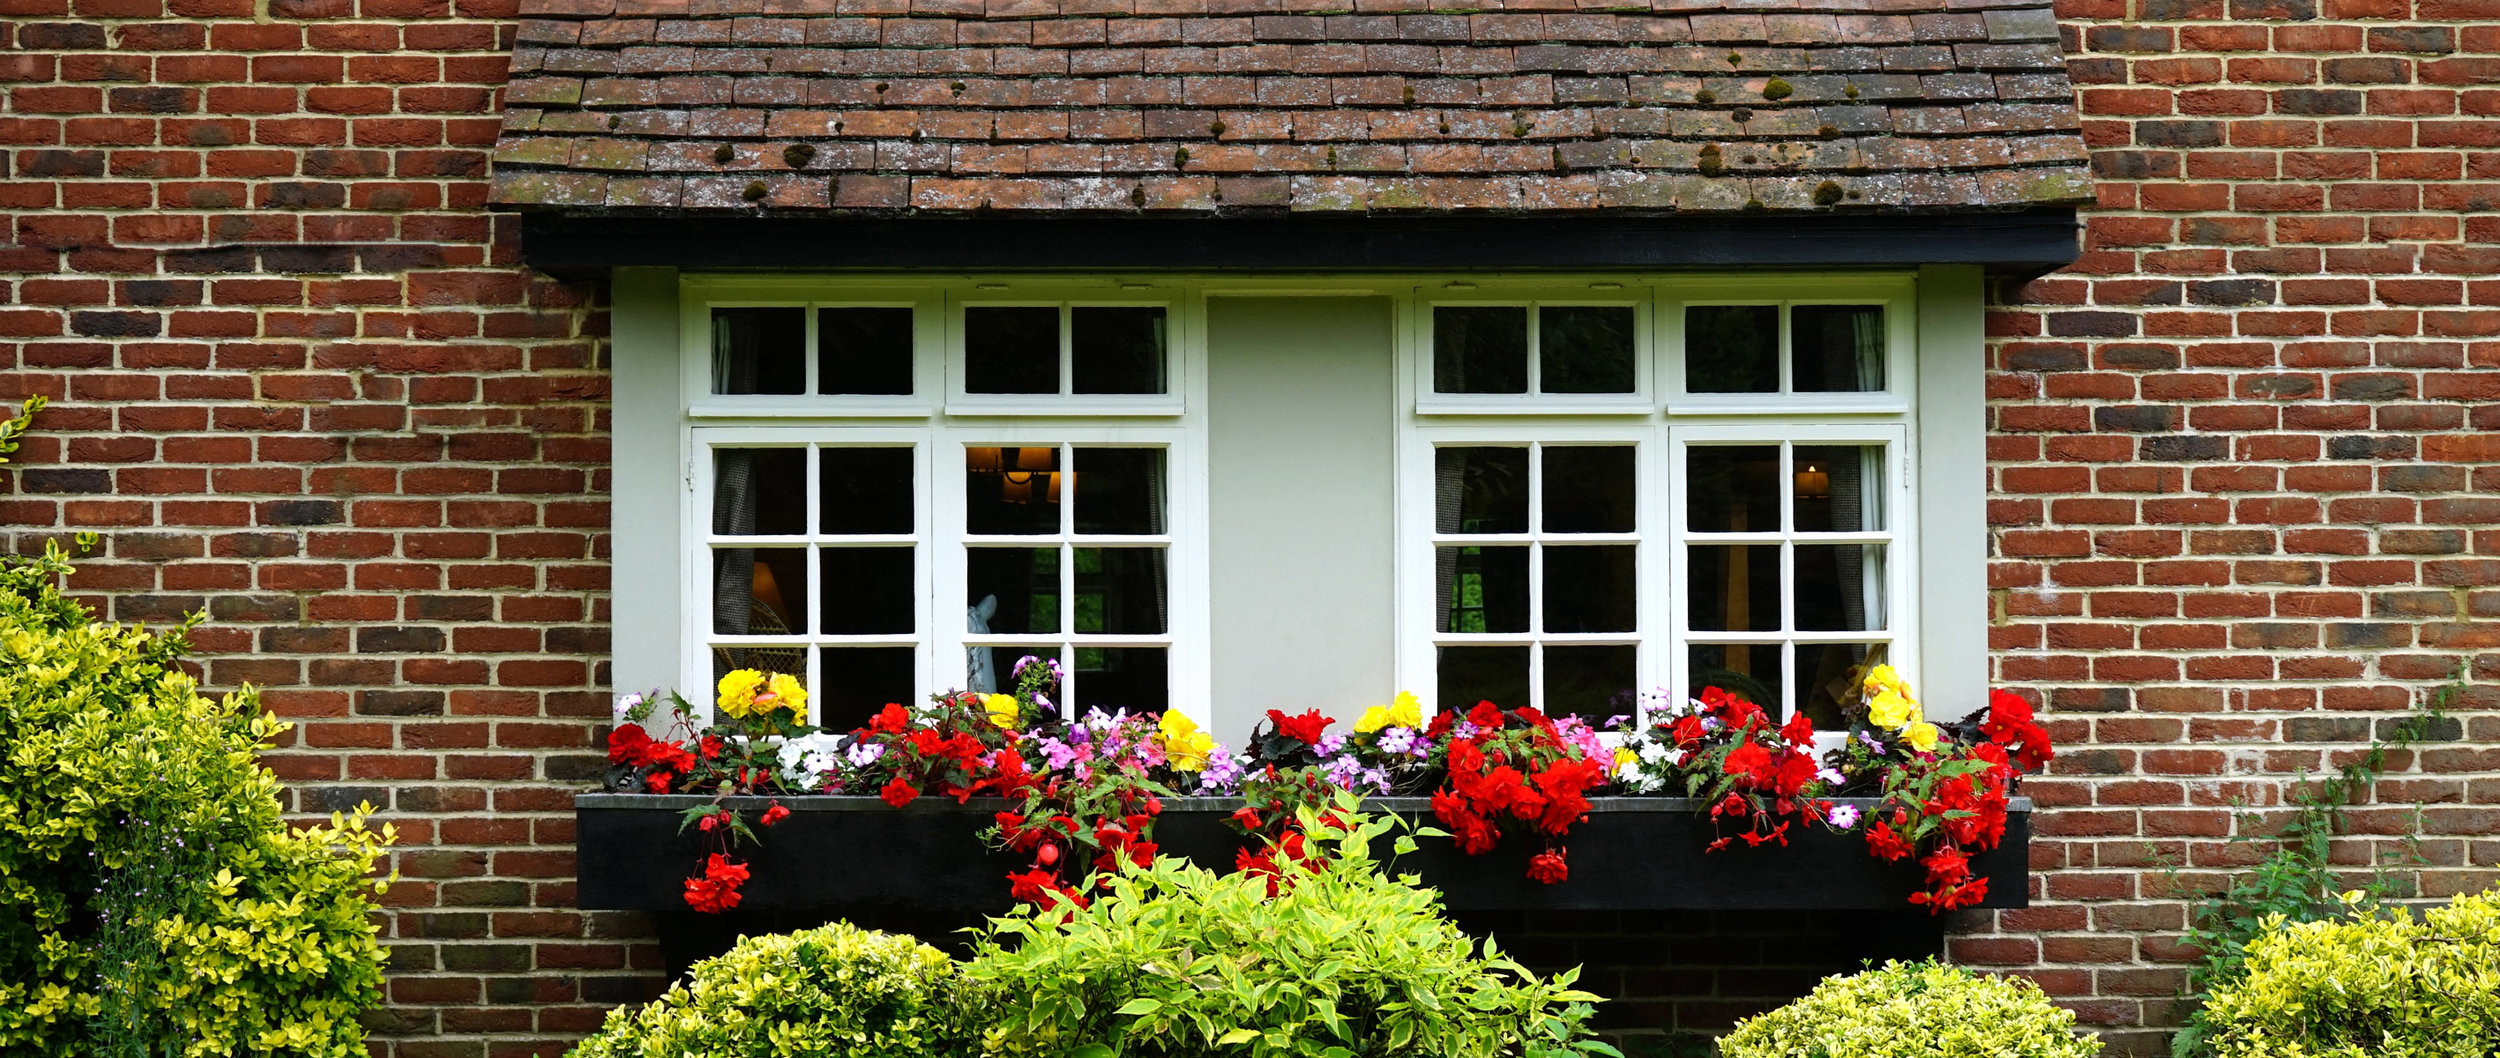 Residential property conveyancing specialists